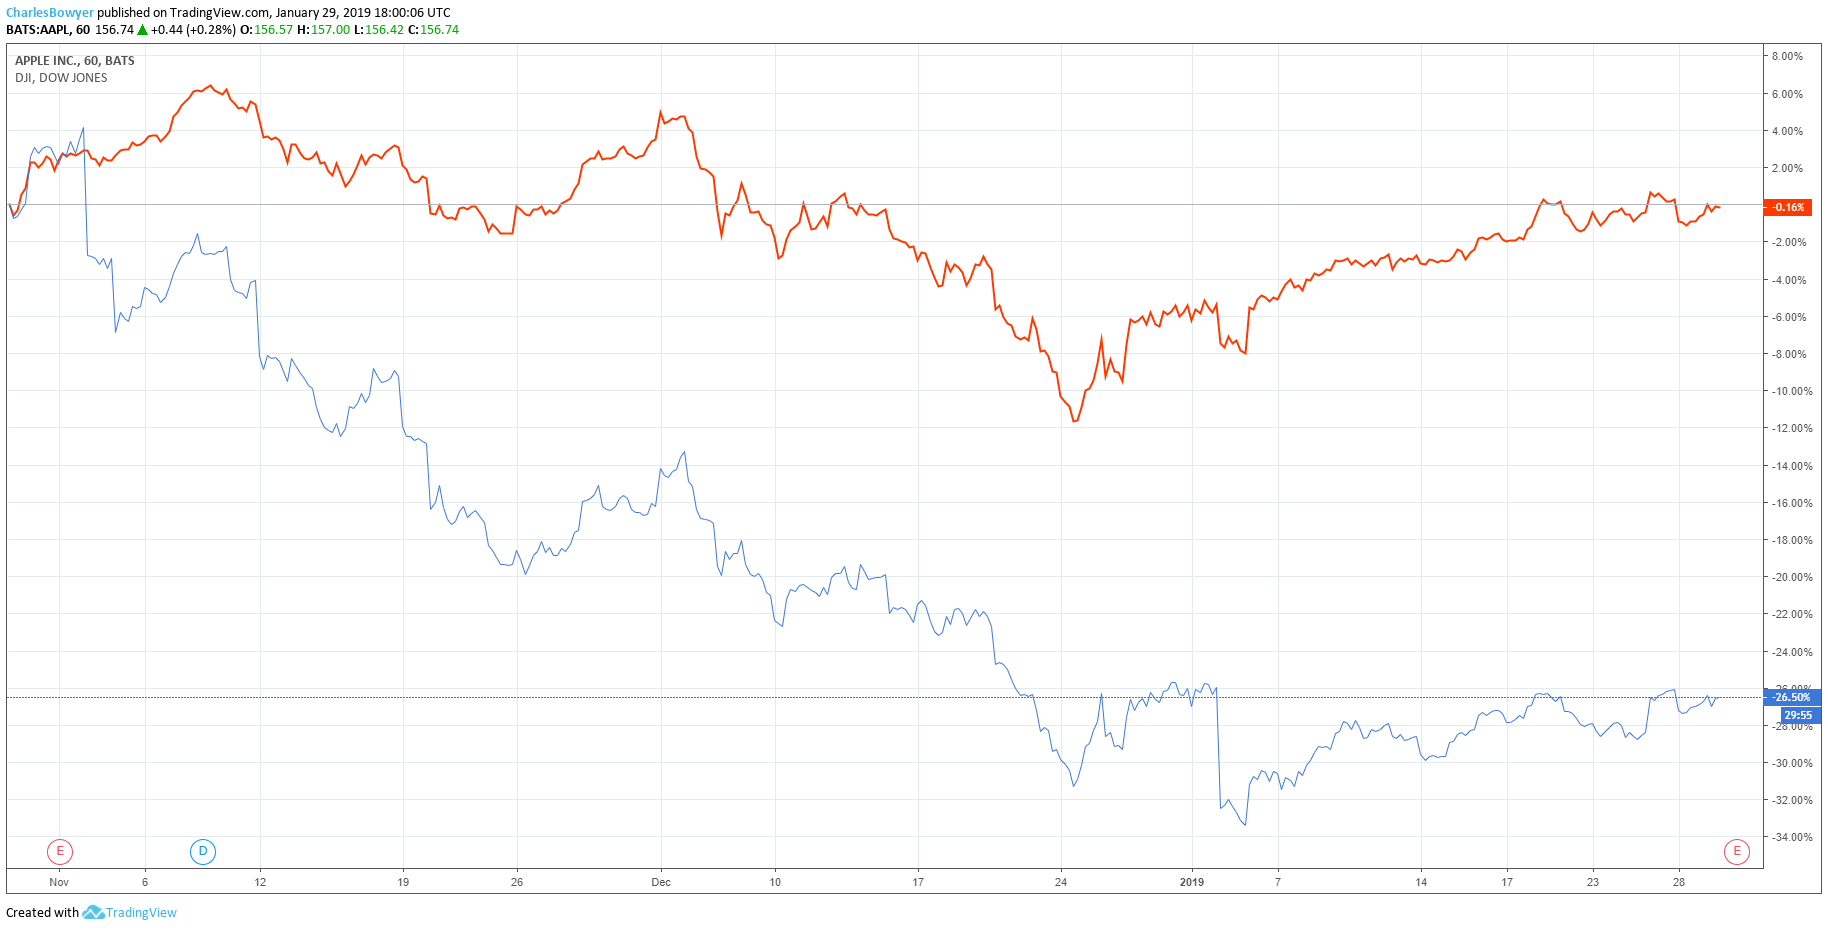 apple vs dow